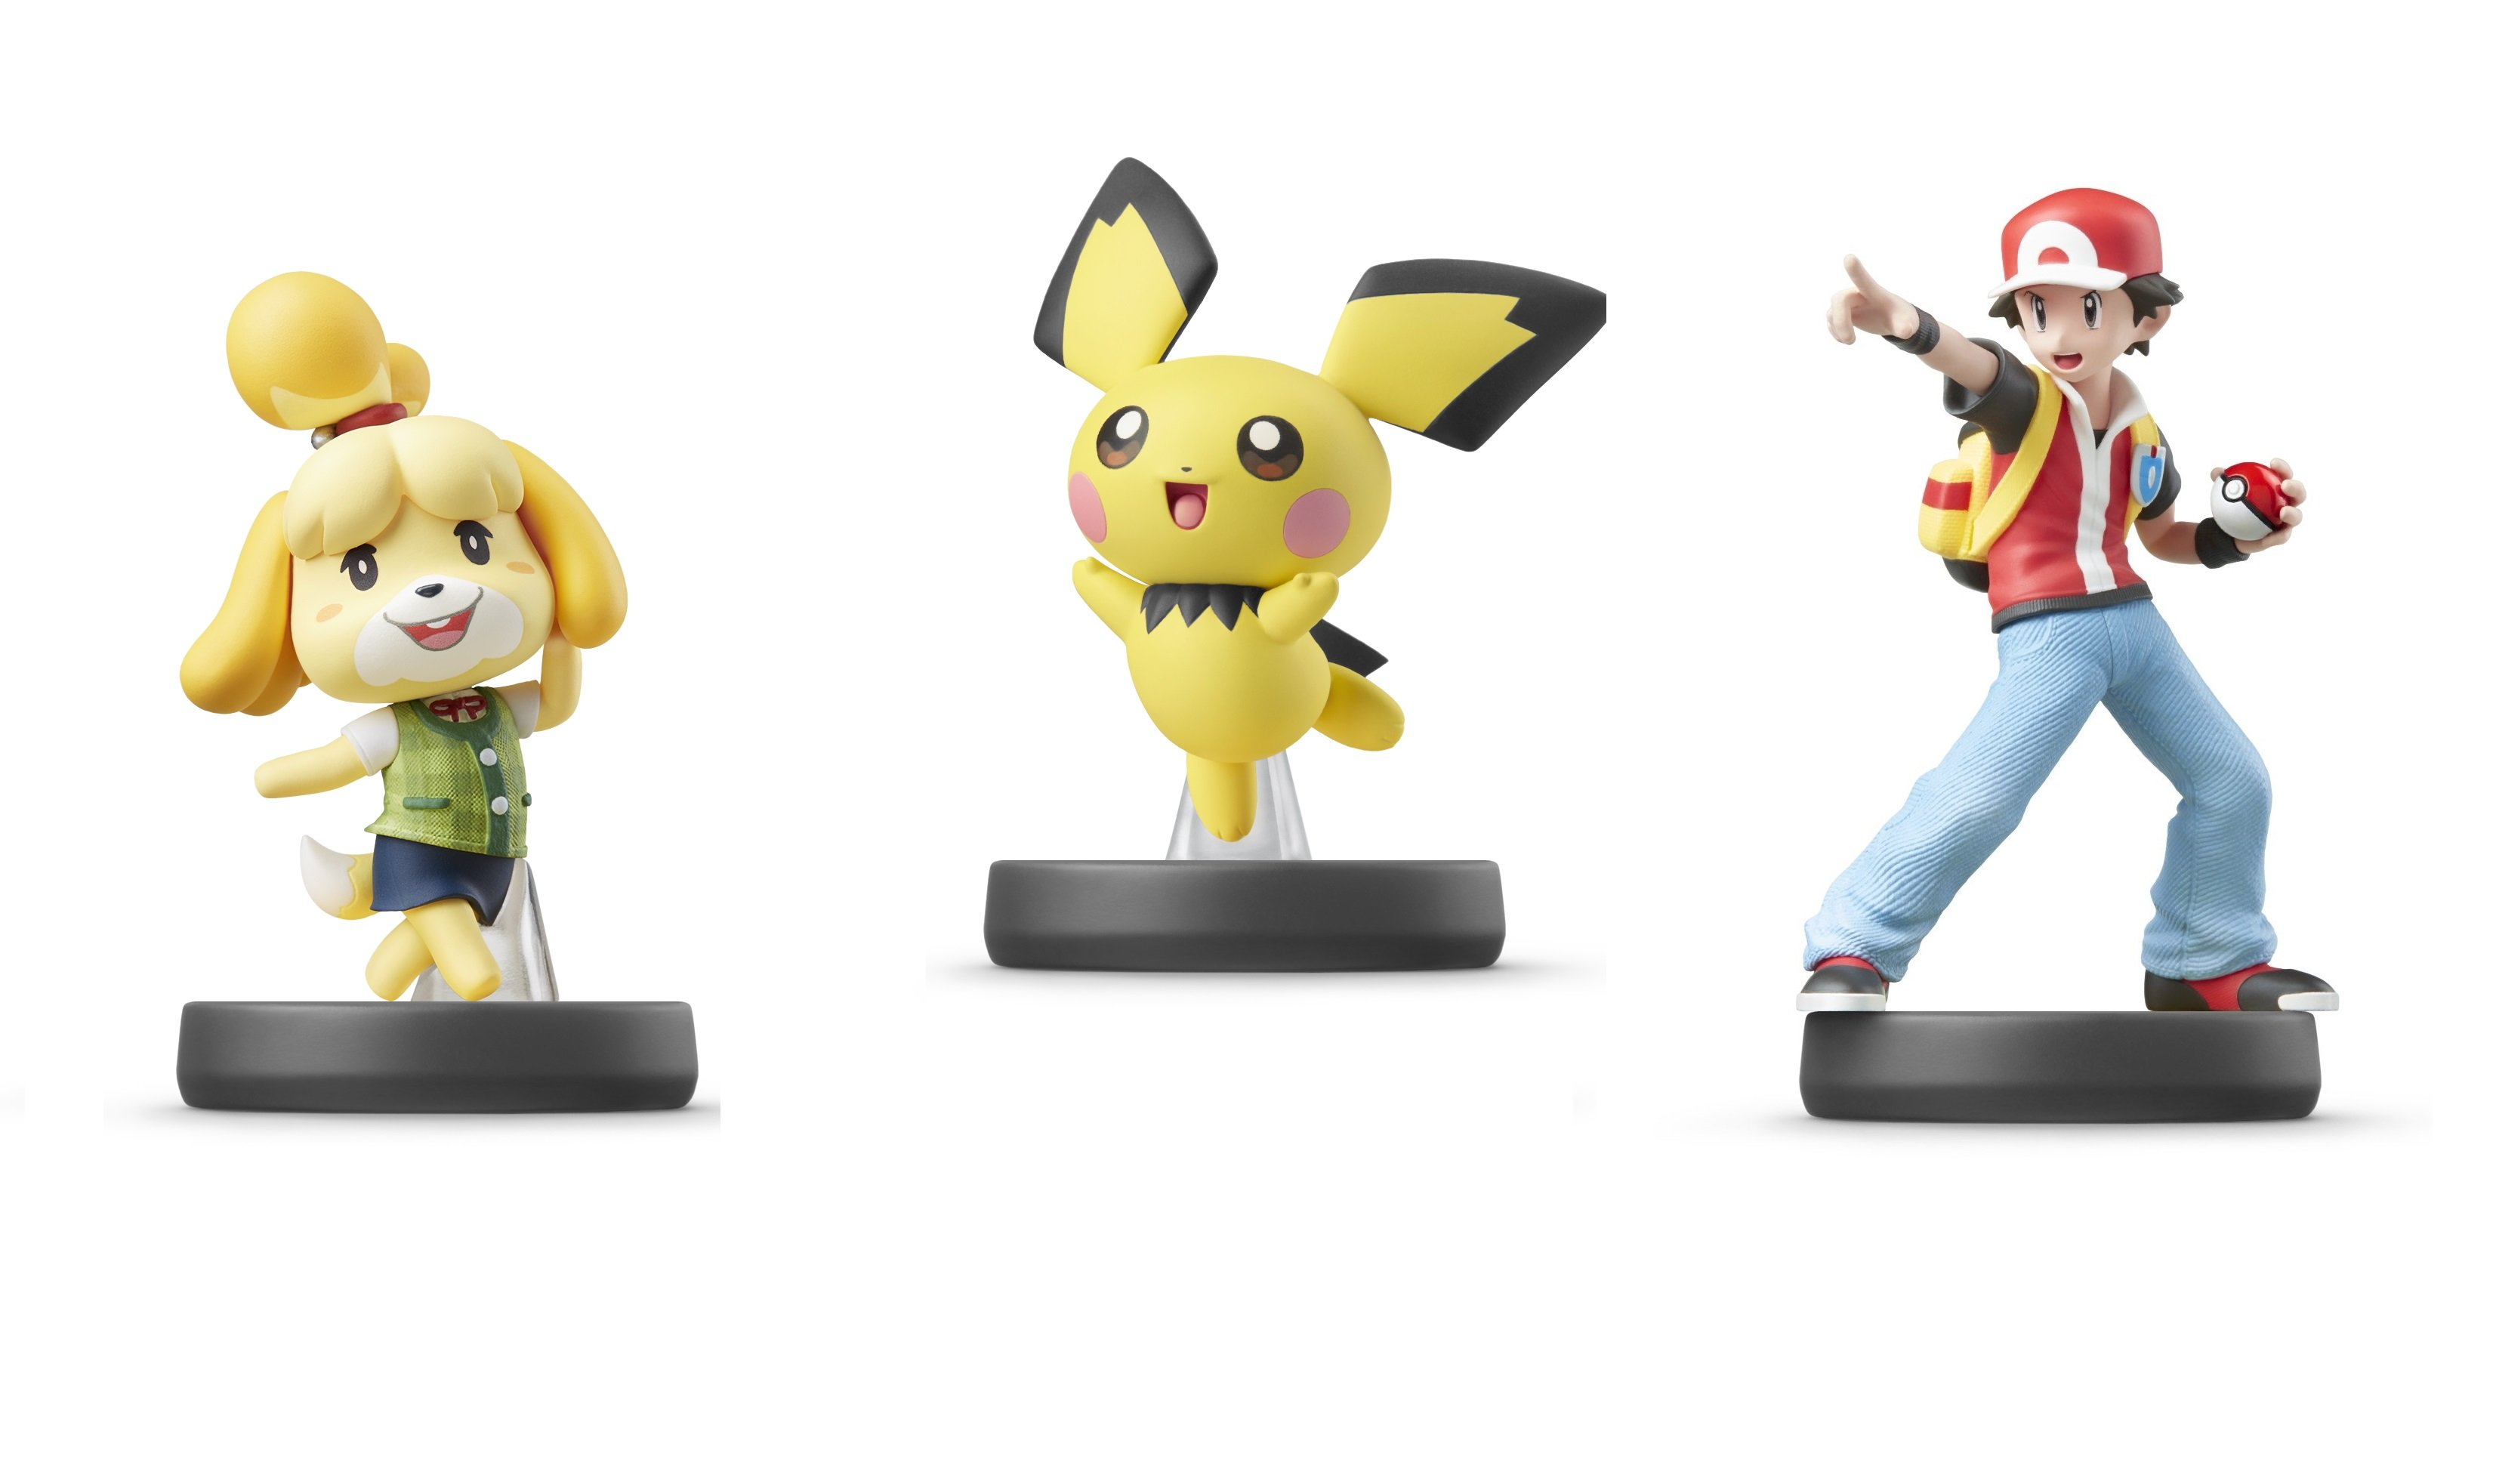 Pichu, Isabelle, and Pokemon Trainer amiibo will be available for purchase later this July.